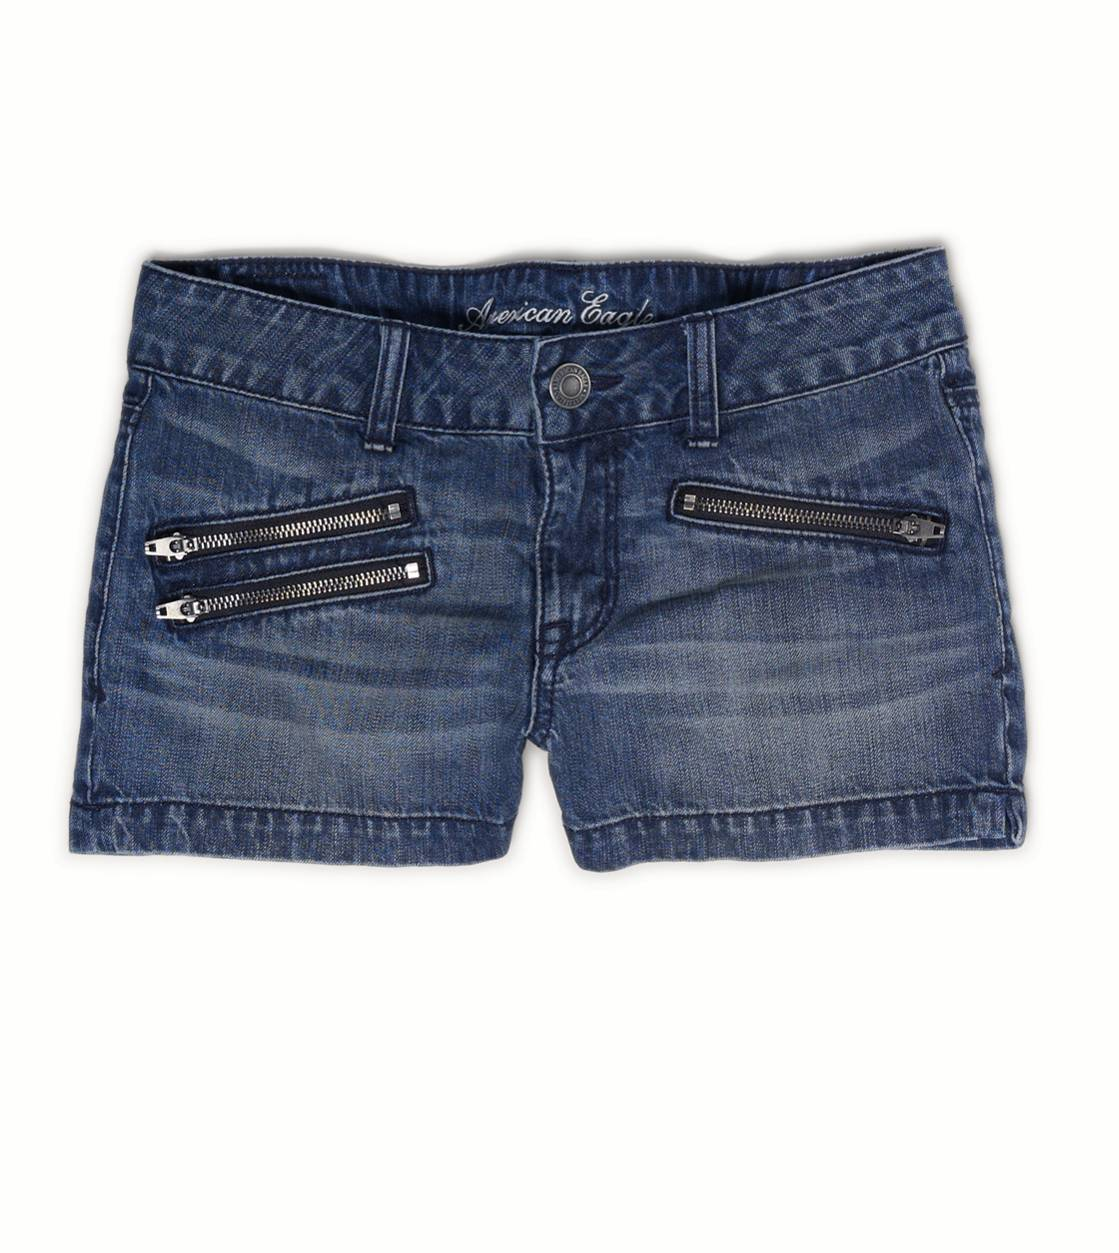 Indigo AE Zip Pocket Denim Shortie